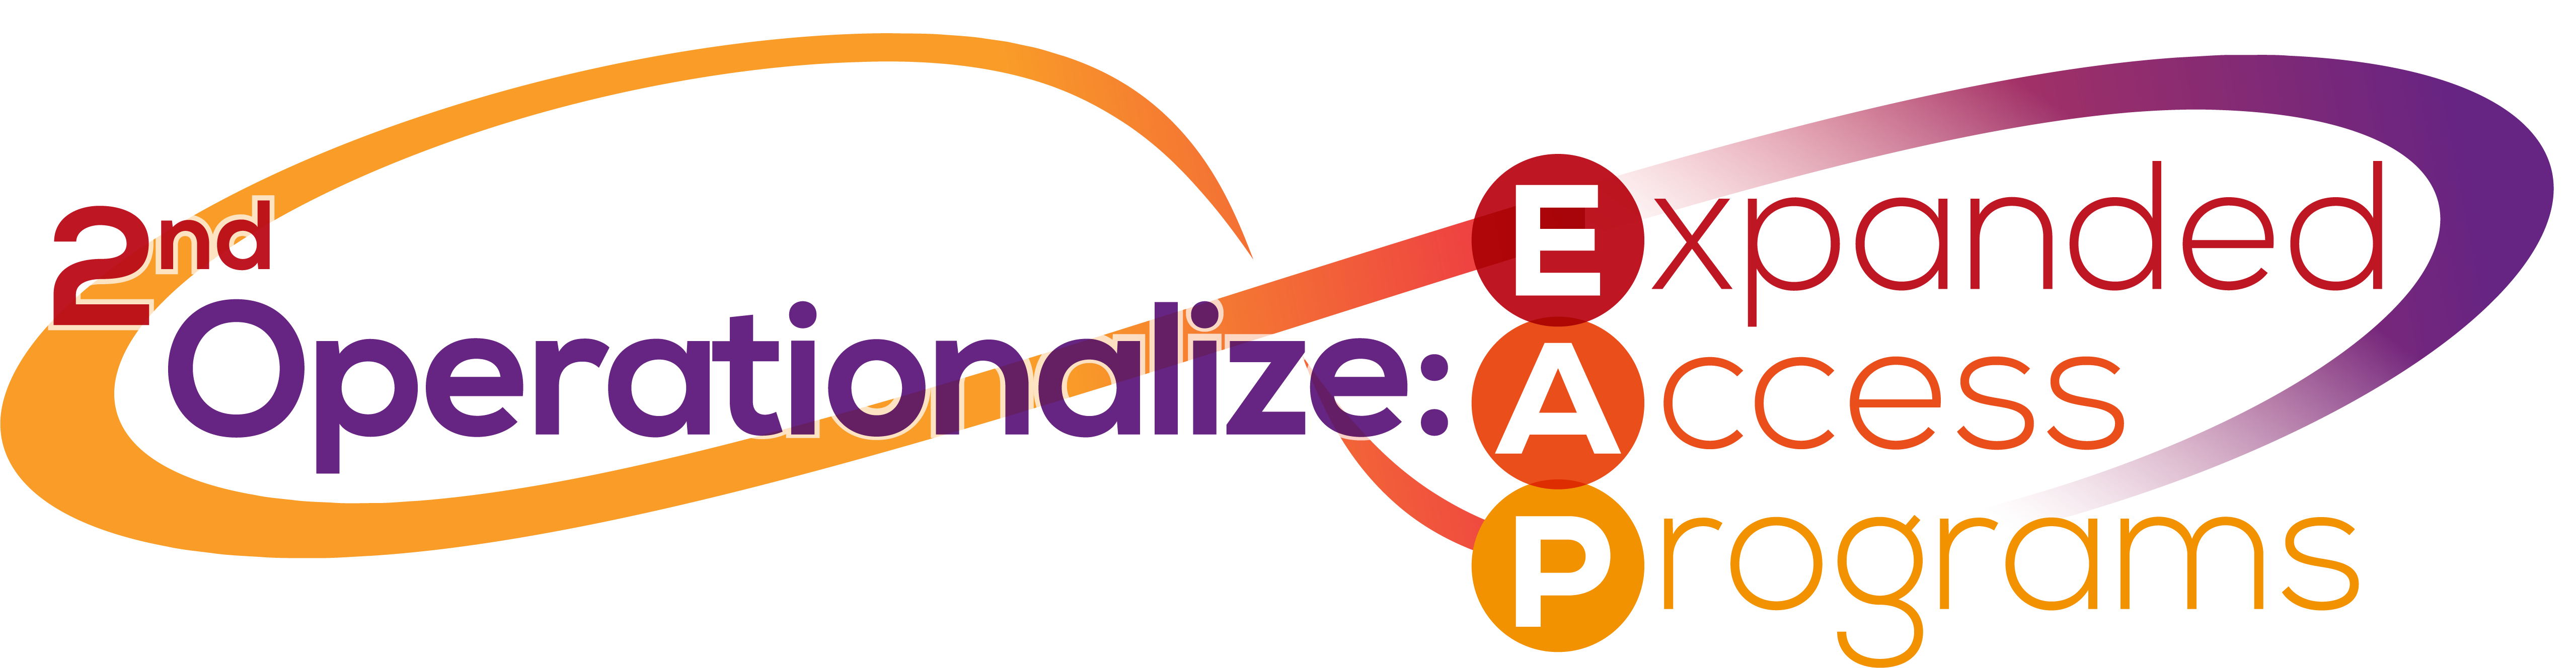 2nd Annual Operationalize: Expanded Access Programs Logo